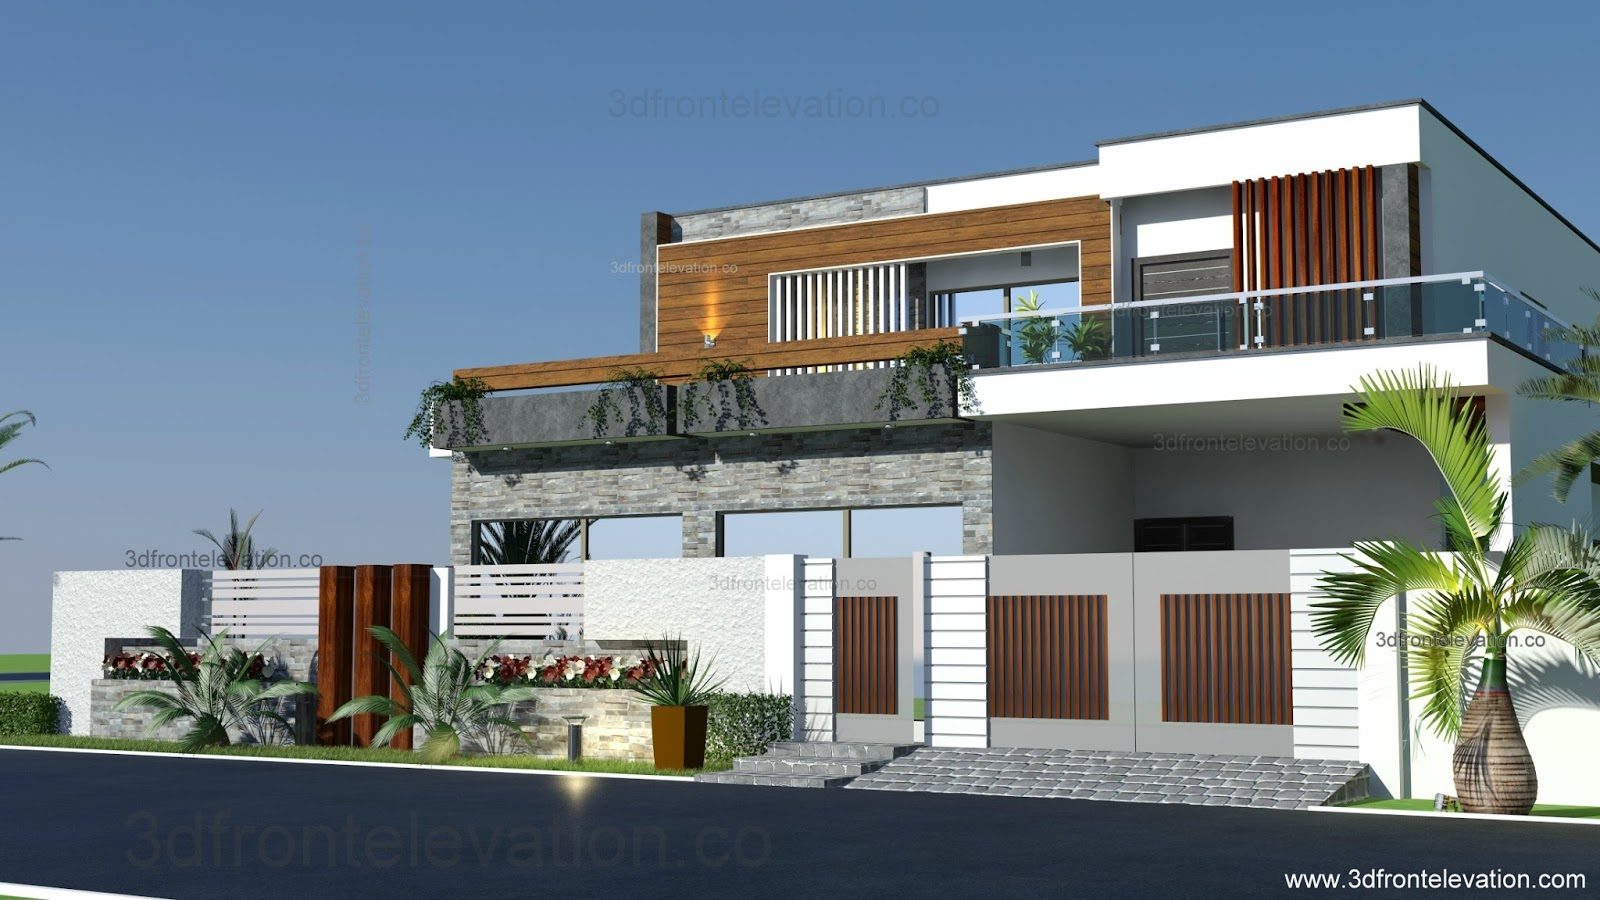 3d front home remodeling and renovation of for Renovate front of house